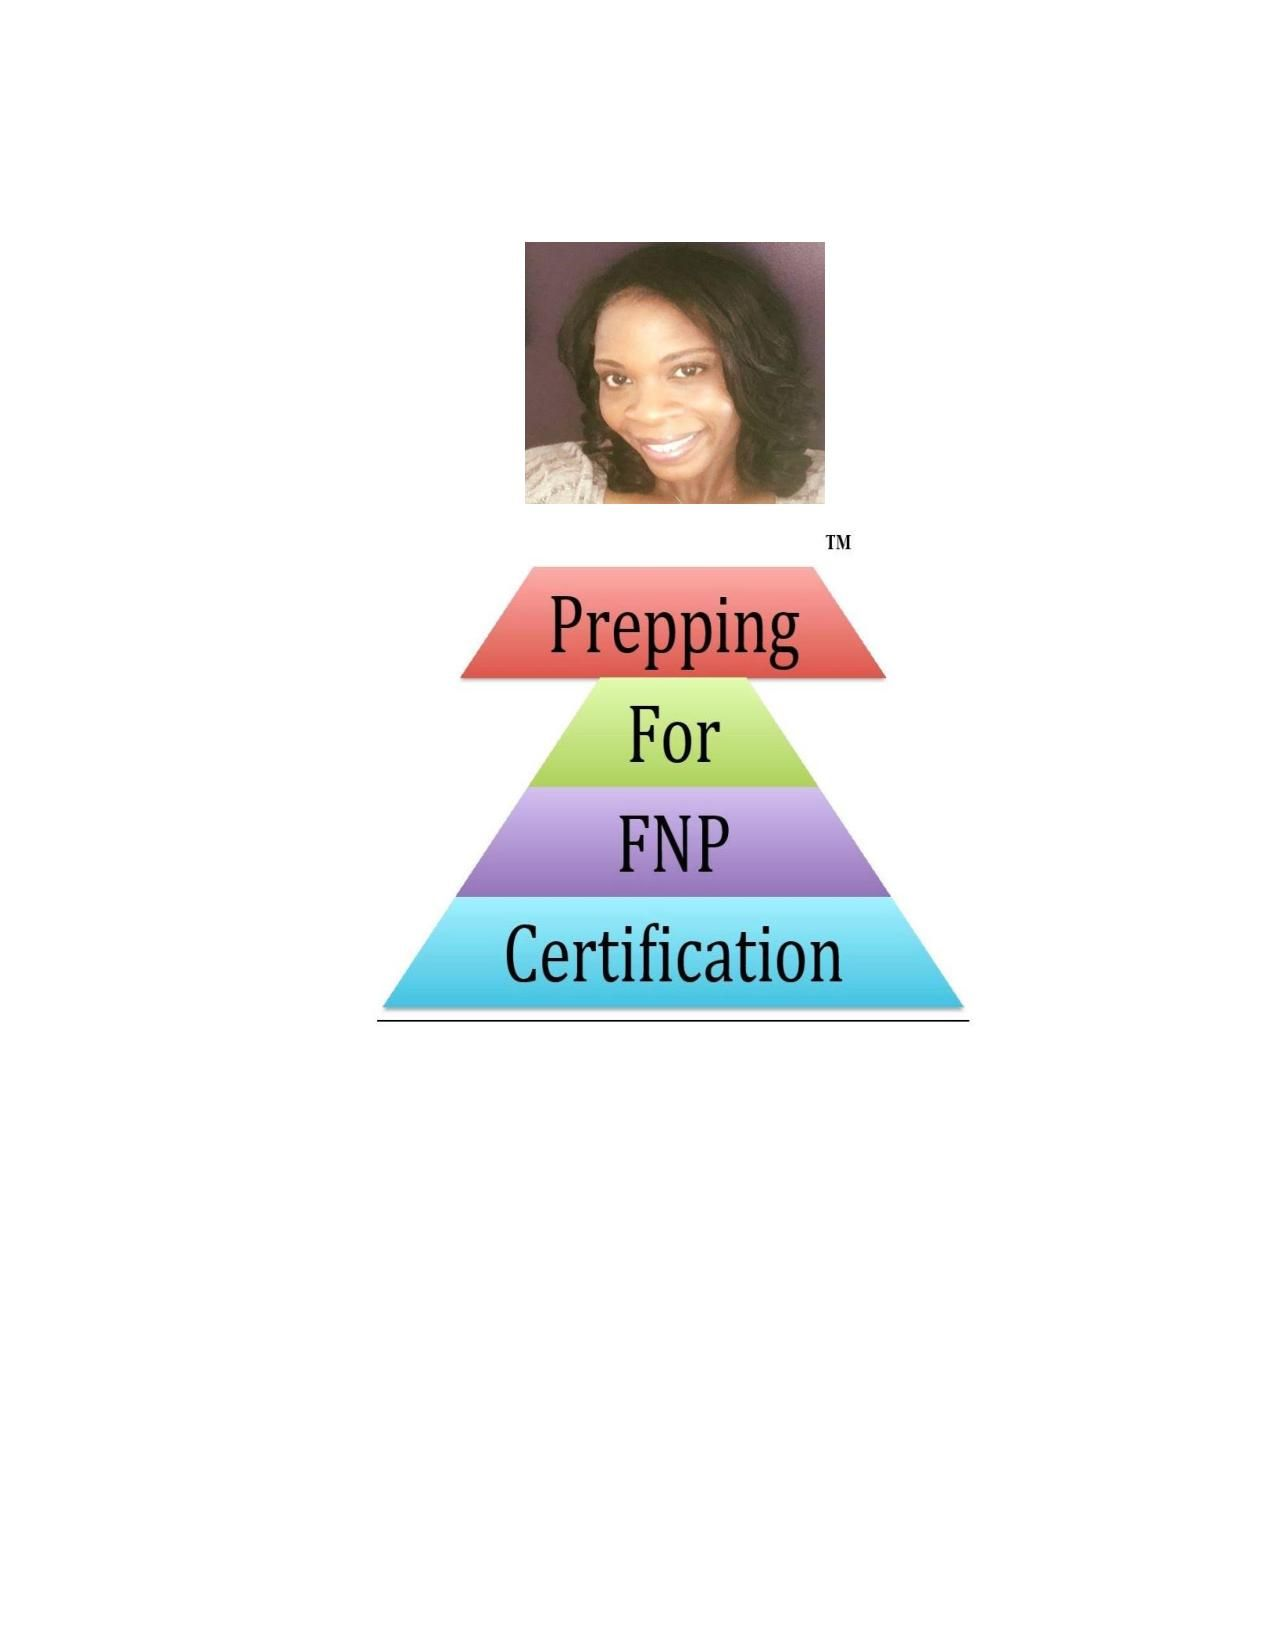 Convert Pdf To Jpg Its Done Prepping For Fnp Certification